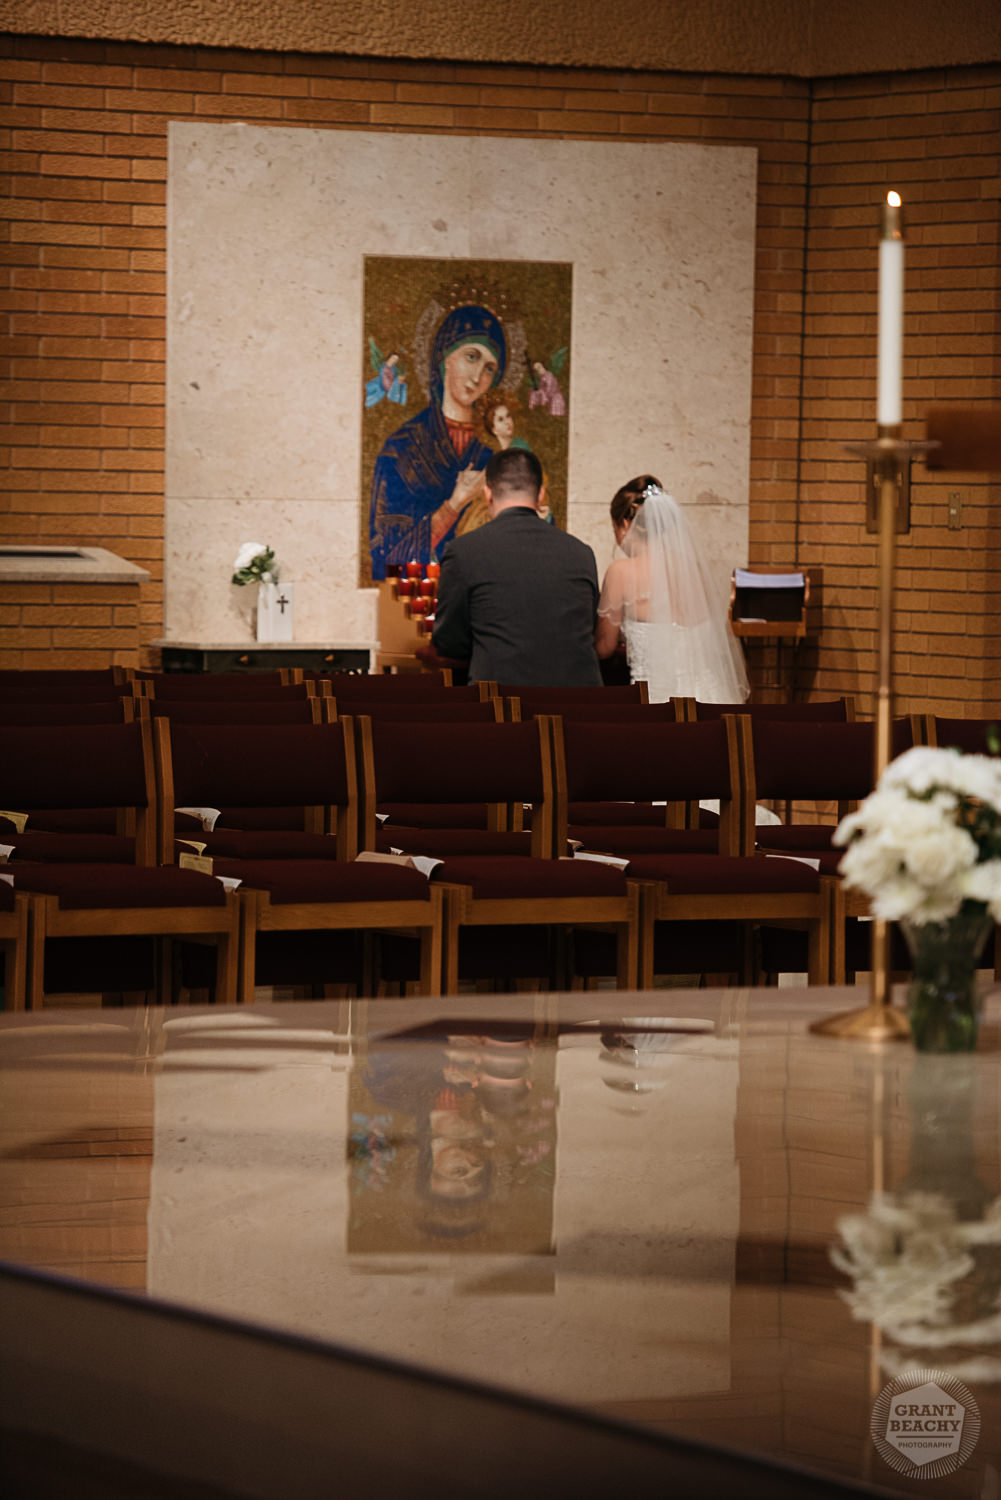 Grant Beachy wedding photographer, south bend, elkhart, chicago-17.jpg